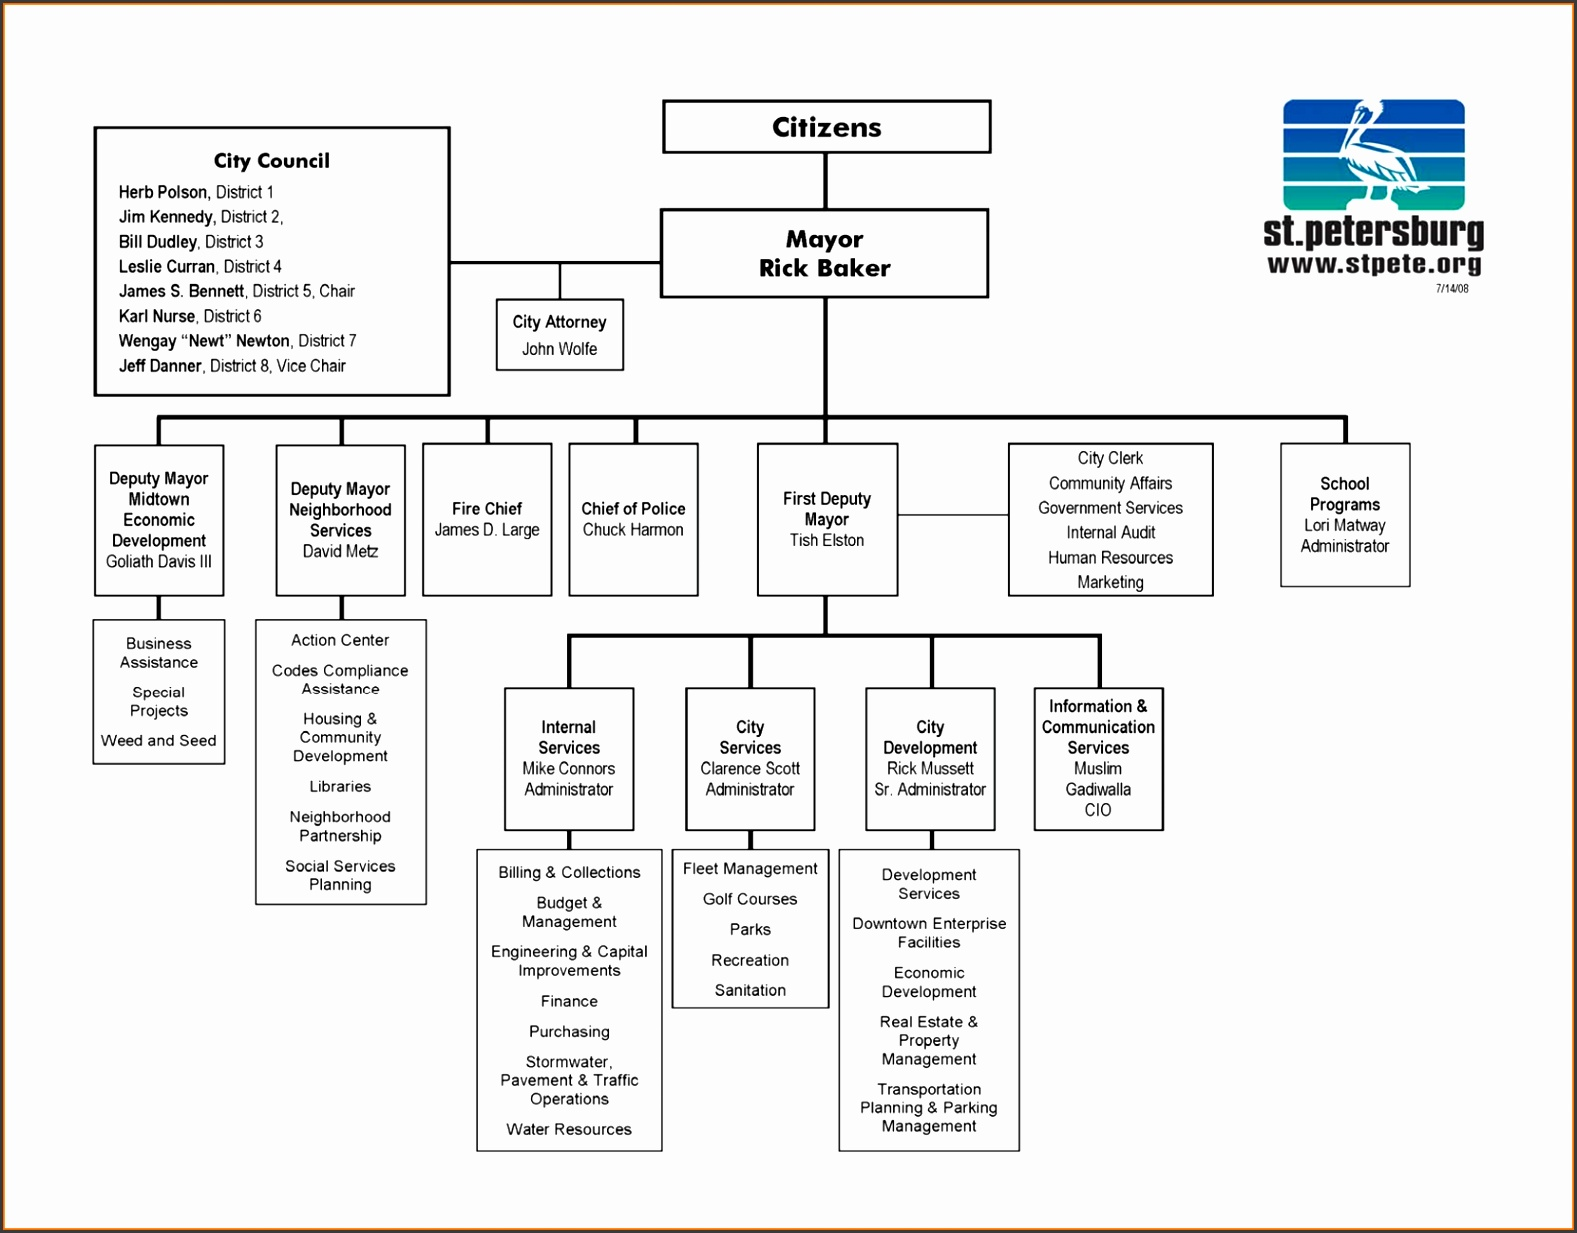 organization chart template wordanization chart template word